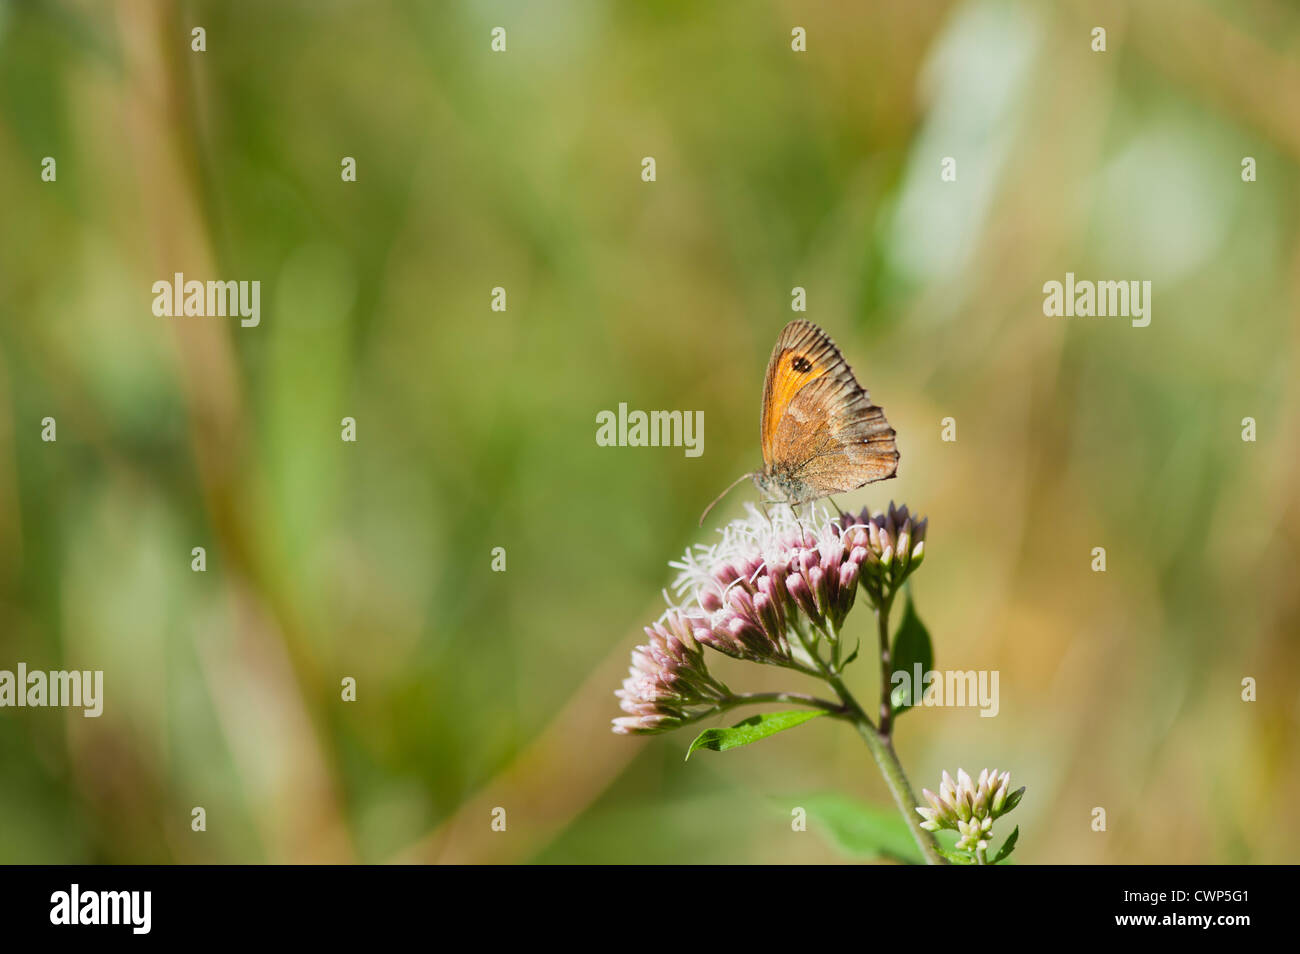 Meadow brown butterfly gathering pollen on flowers - Stock Image